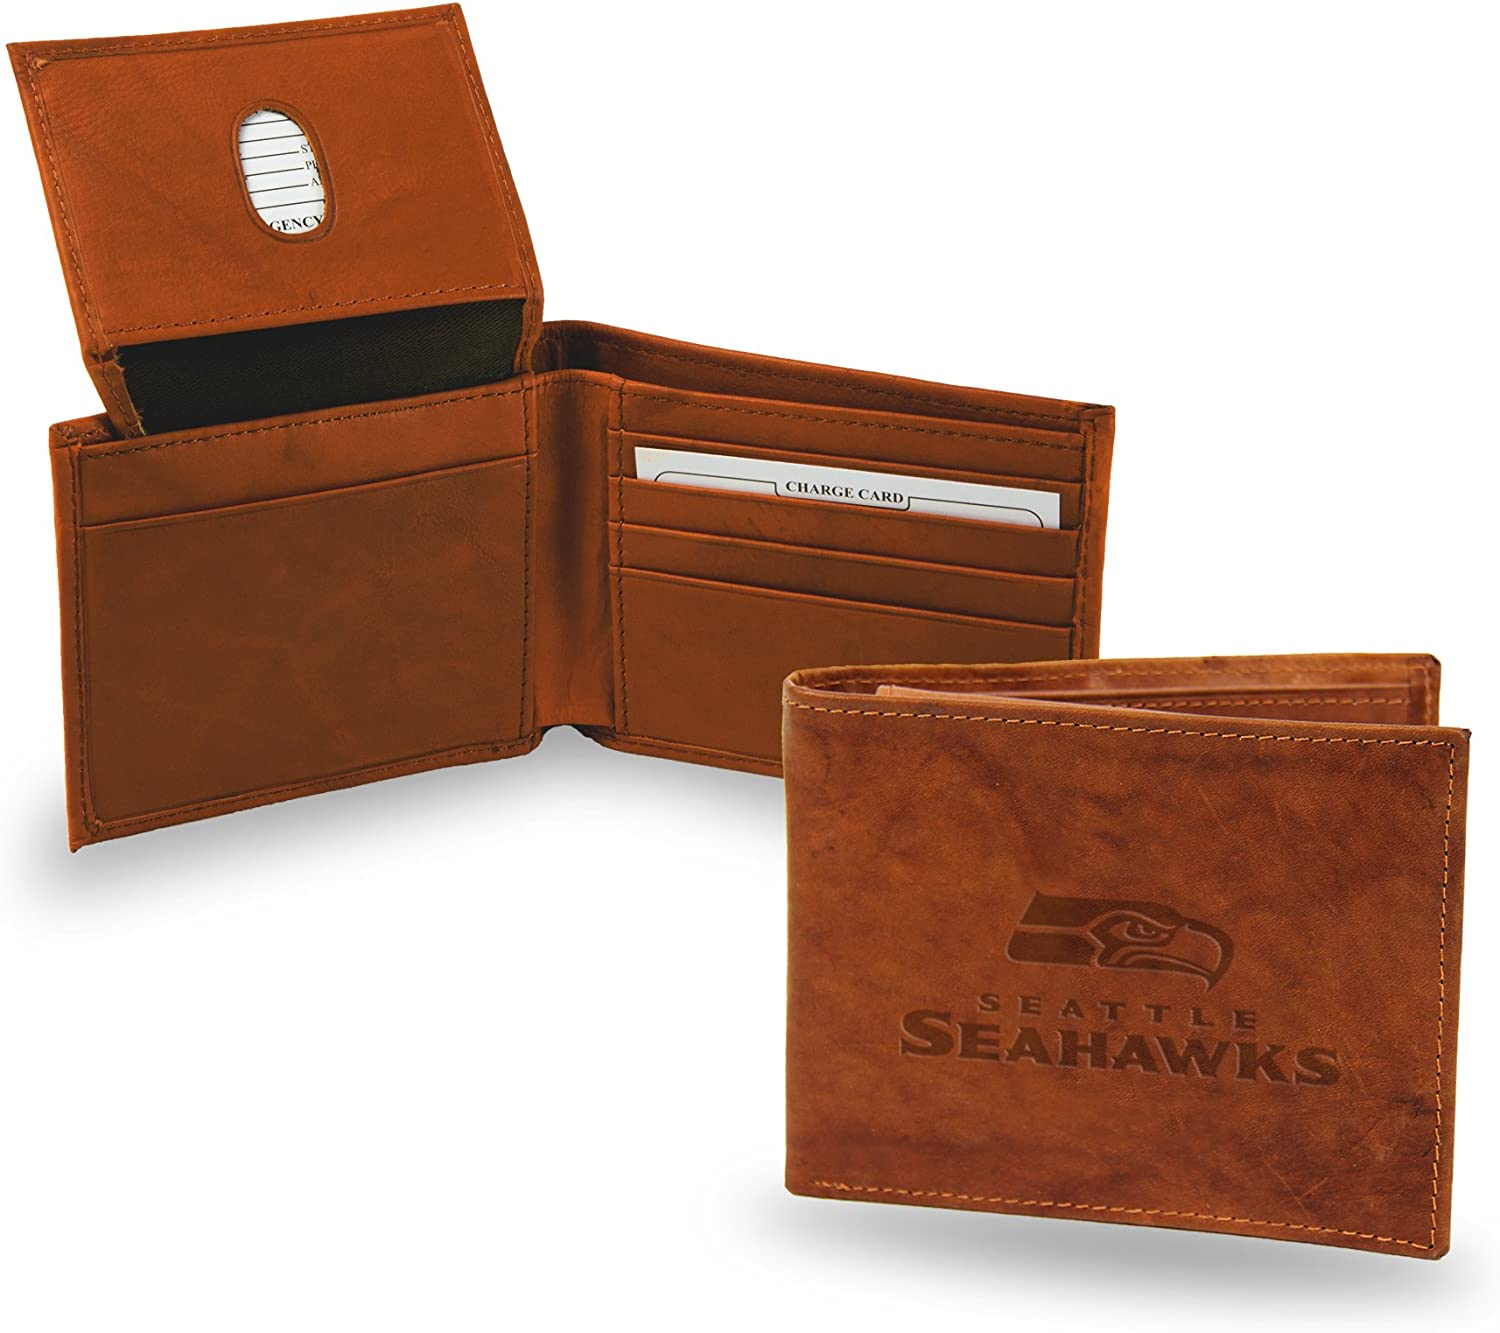 Rico Popular popular Industries Adult-Unisex's NFL specialty shop Leather Brown Billfold Wallet